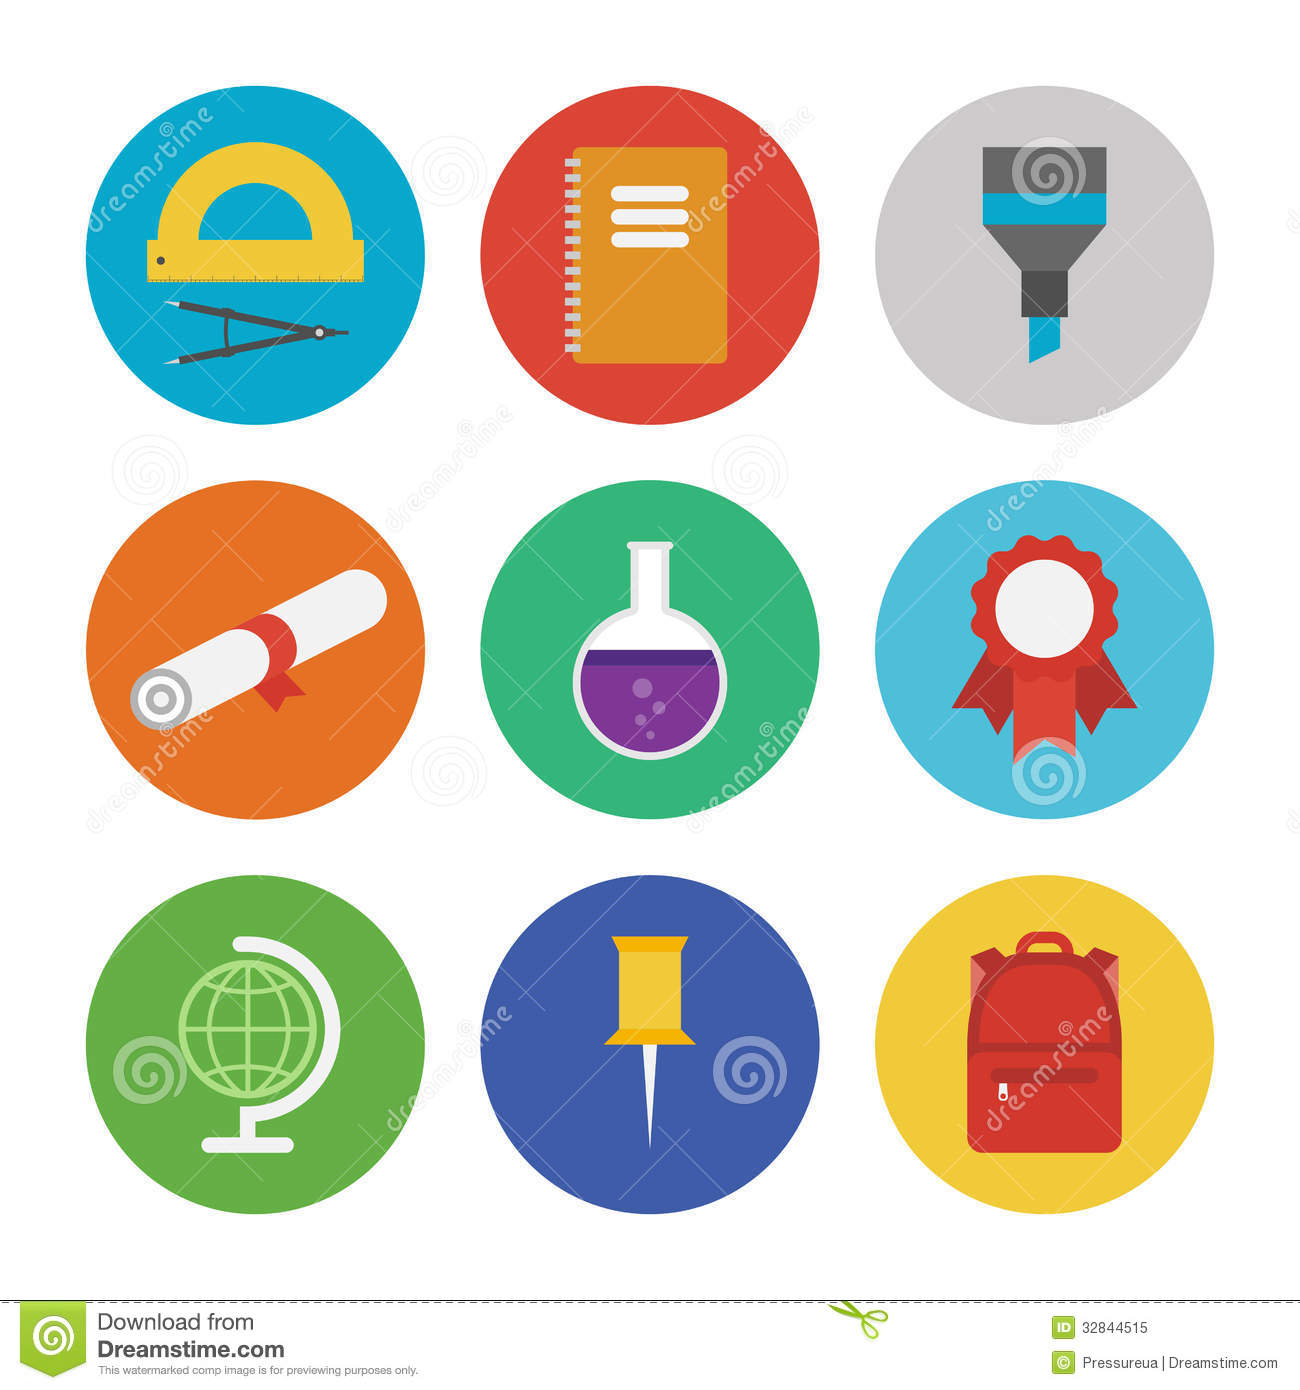 6 Flat Education Icons Black And White Images